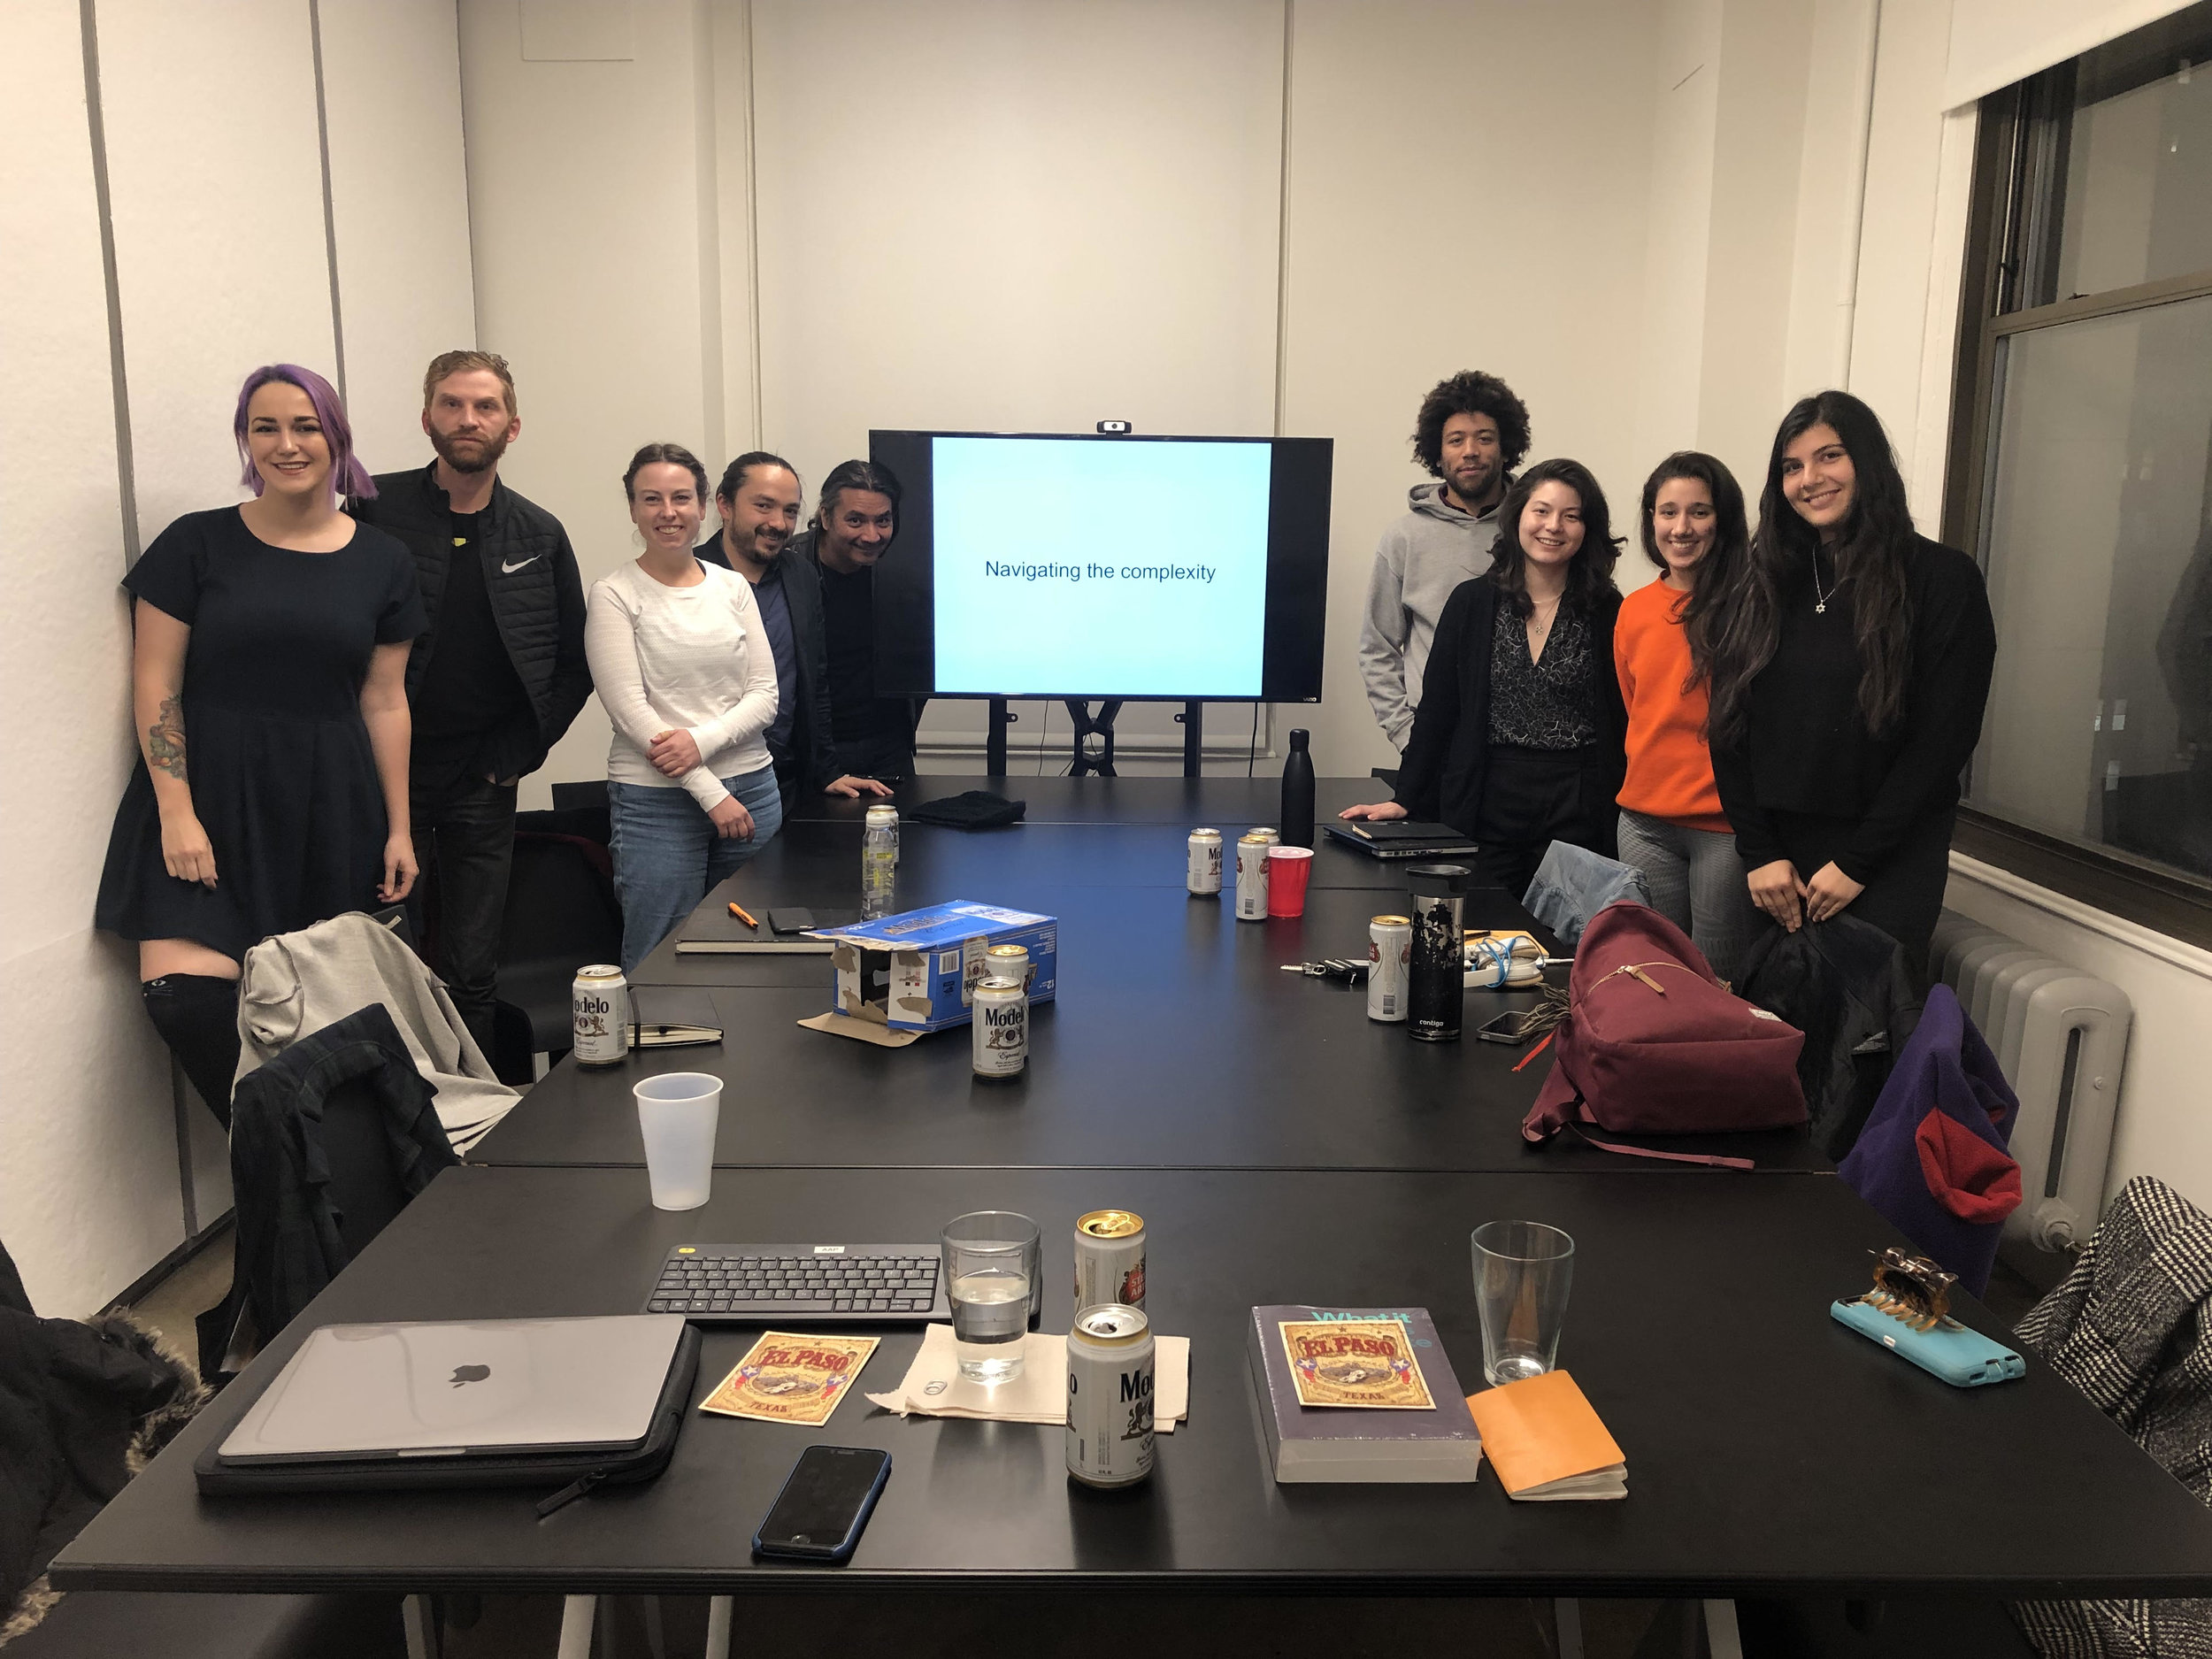 Art & Law Program fellows for the fall 2018 term. Photo taken at Cornell AAP space in lower Manhattan. Missing is Katya Grokhovsky (Dec. 2018).